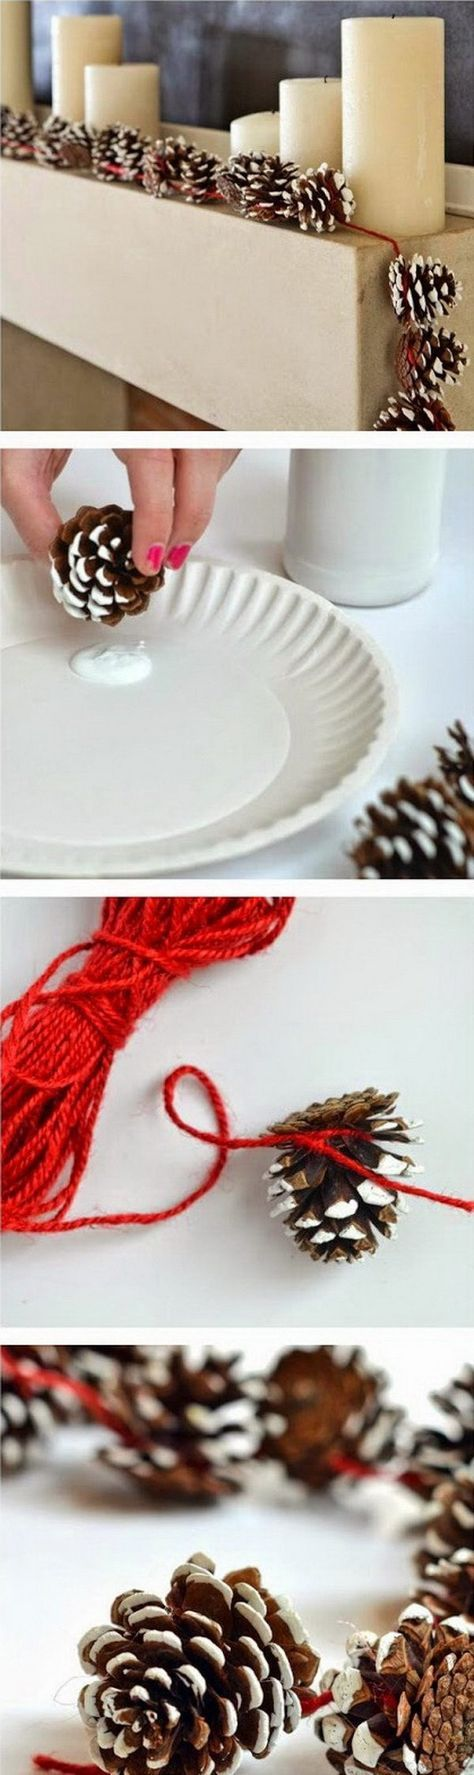 Pine Cone Garlands for Christmas Decoration. Create this simple pine cone garland for your winter or Chirstmas mantel decoration.